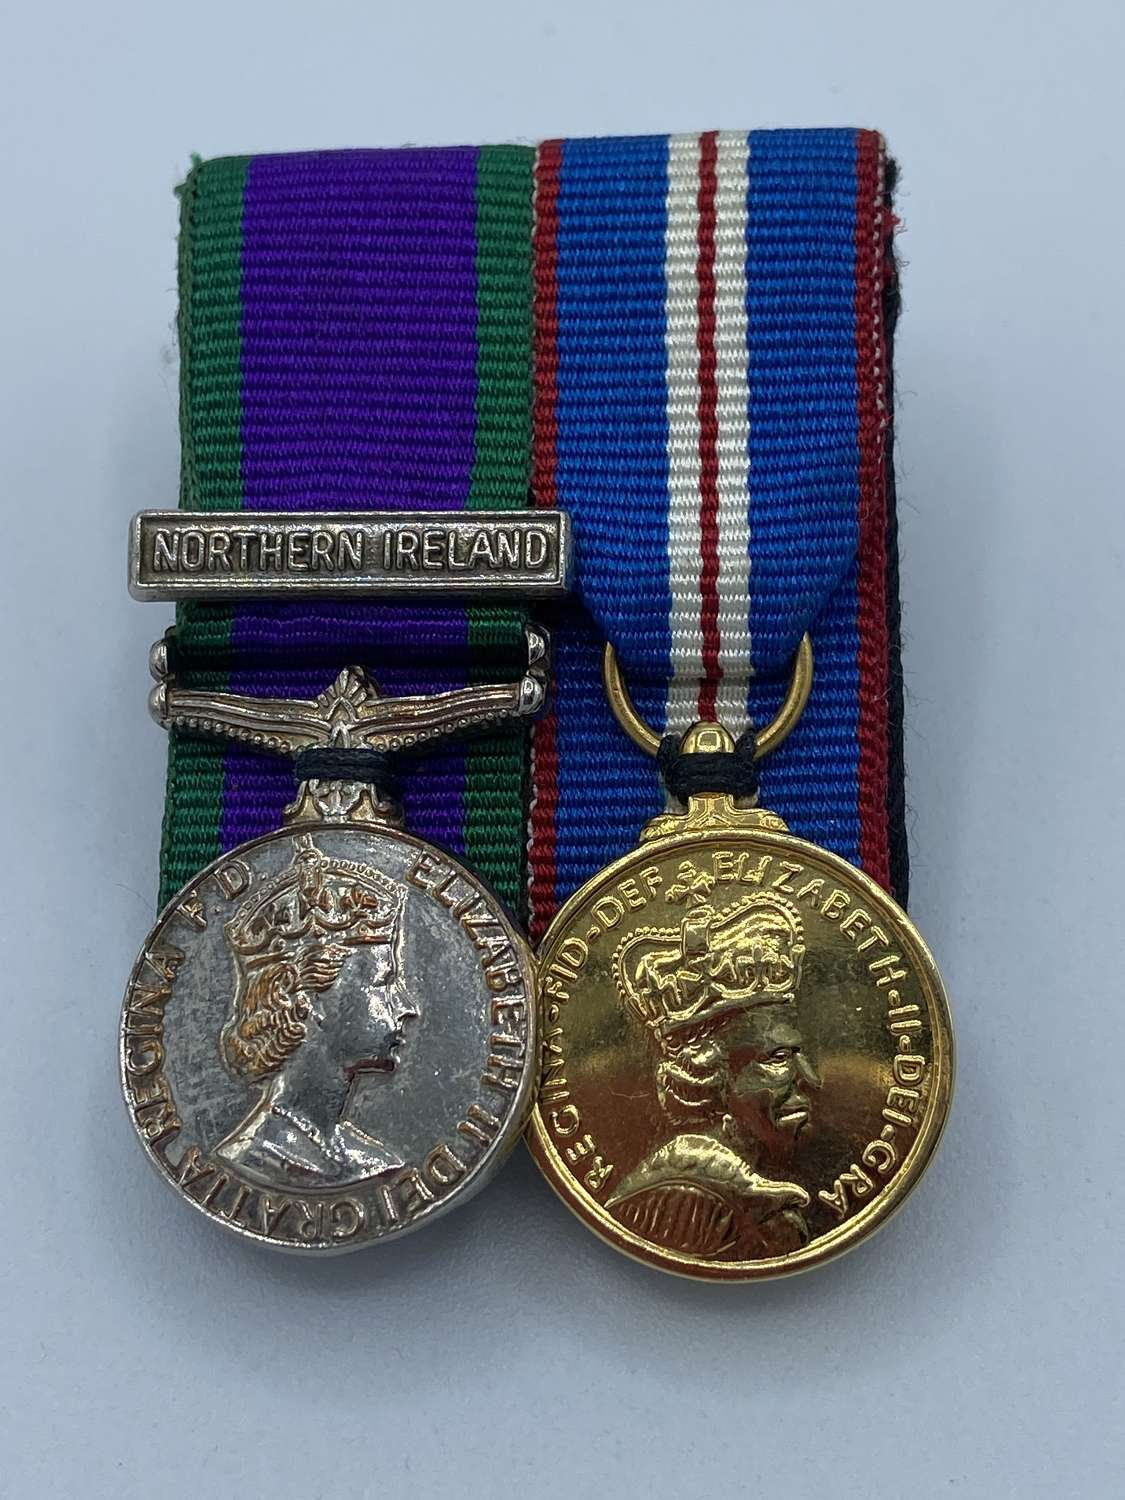 WW2 Minature Medal Duo LGSM- Northern Ireland Clasp & Golden Jubilee